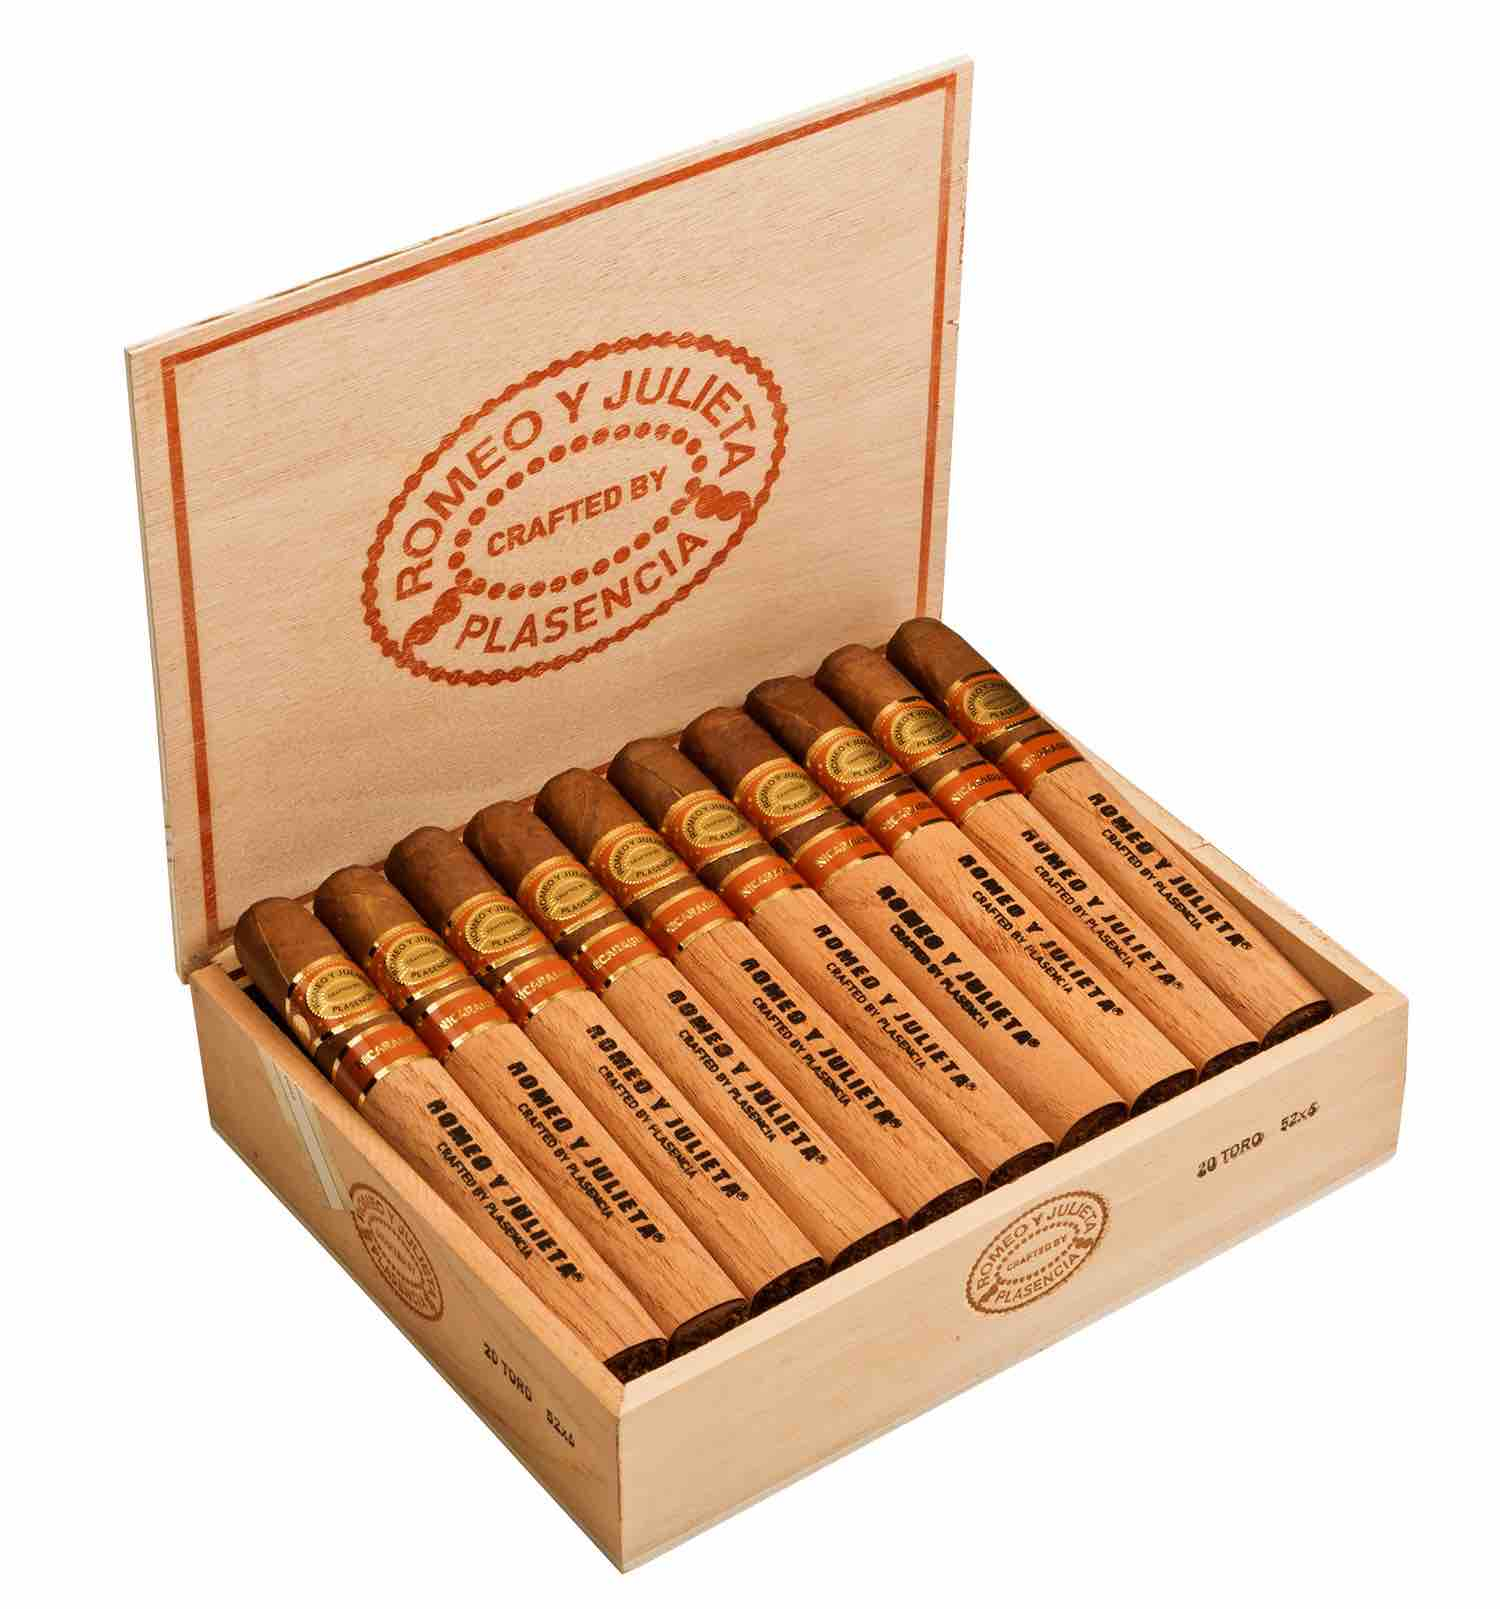 Cigar News: Santa Clara Cigars to Showcase Romeo y Julieta Crafted by Plasencia at 2019 IPCPR